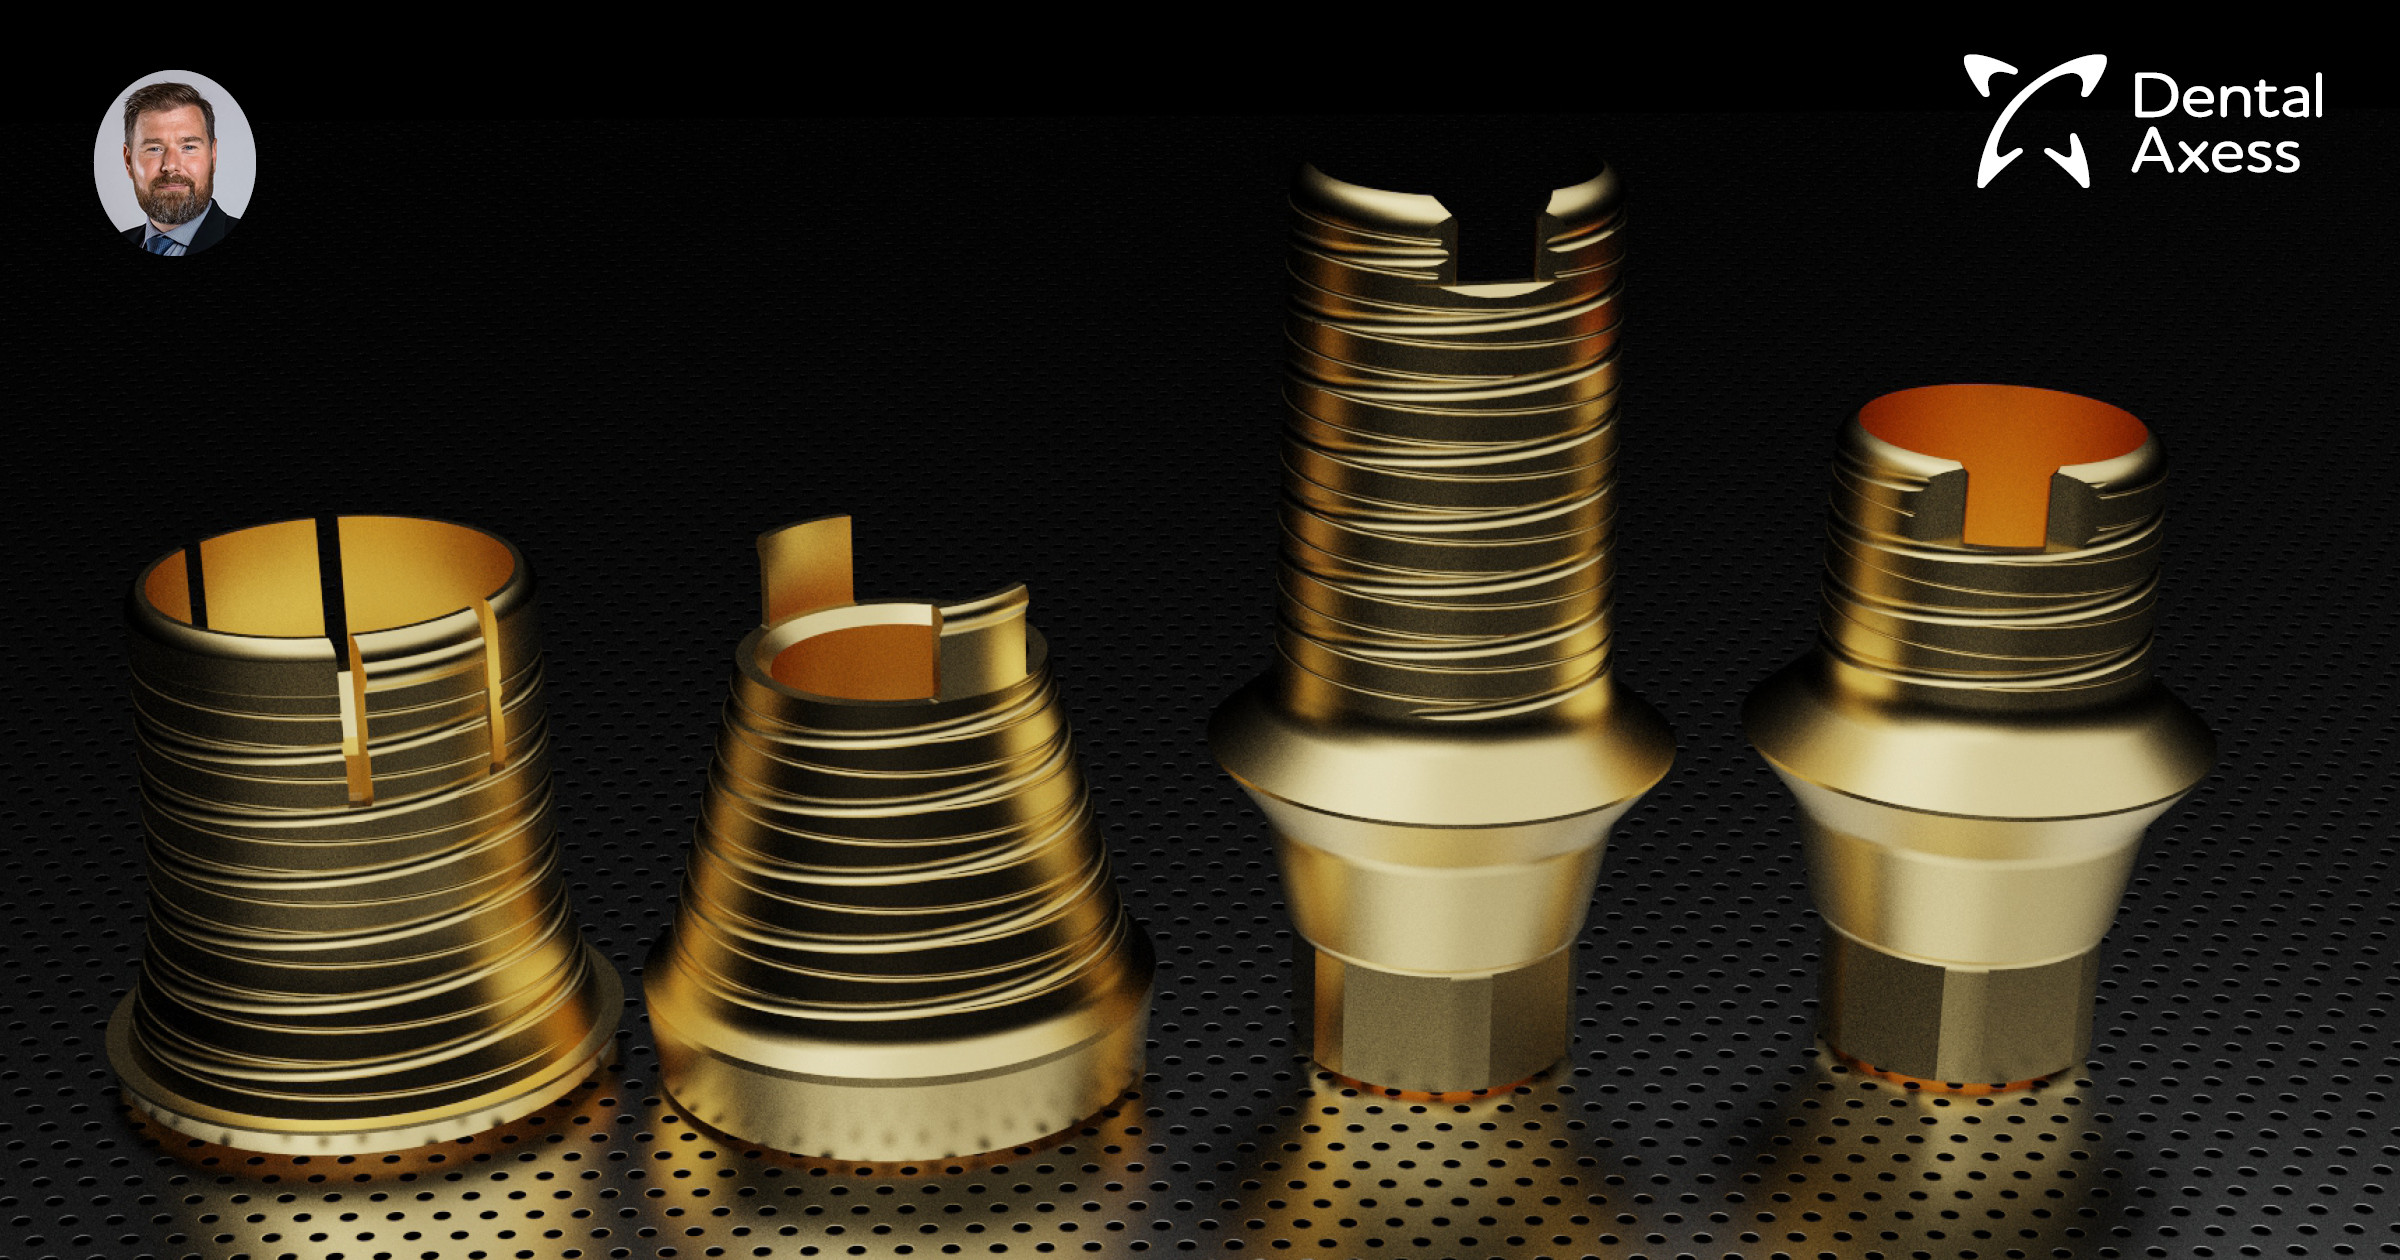 Webinar: Discover NEW Possibilities with Elos Accurate® Digital Implant Components